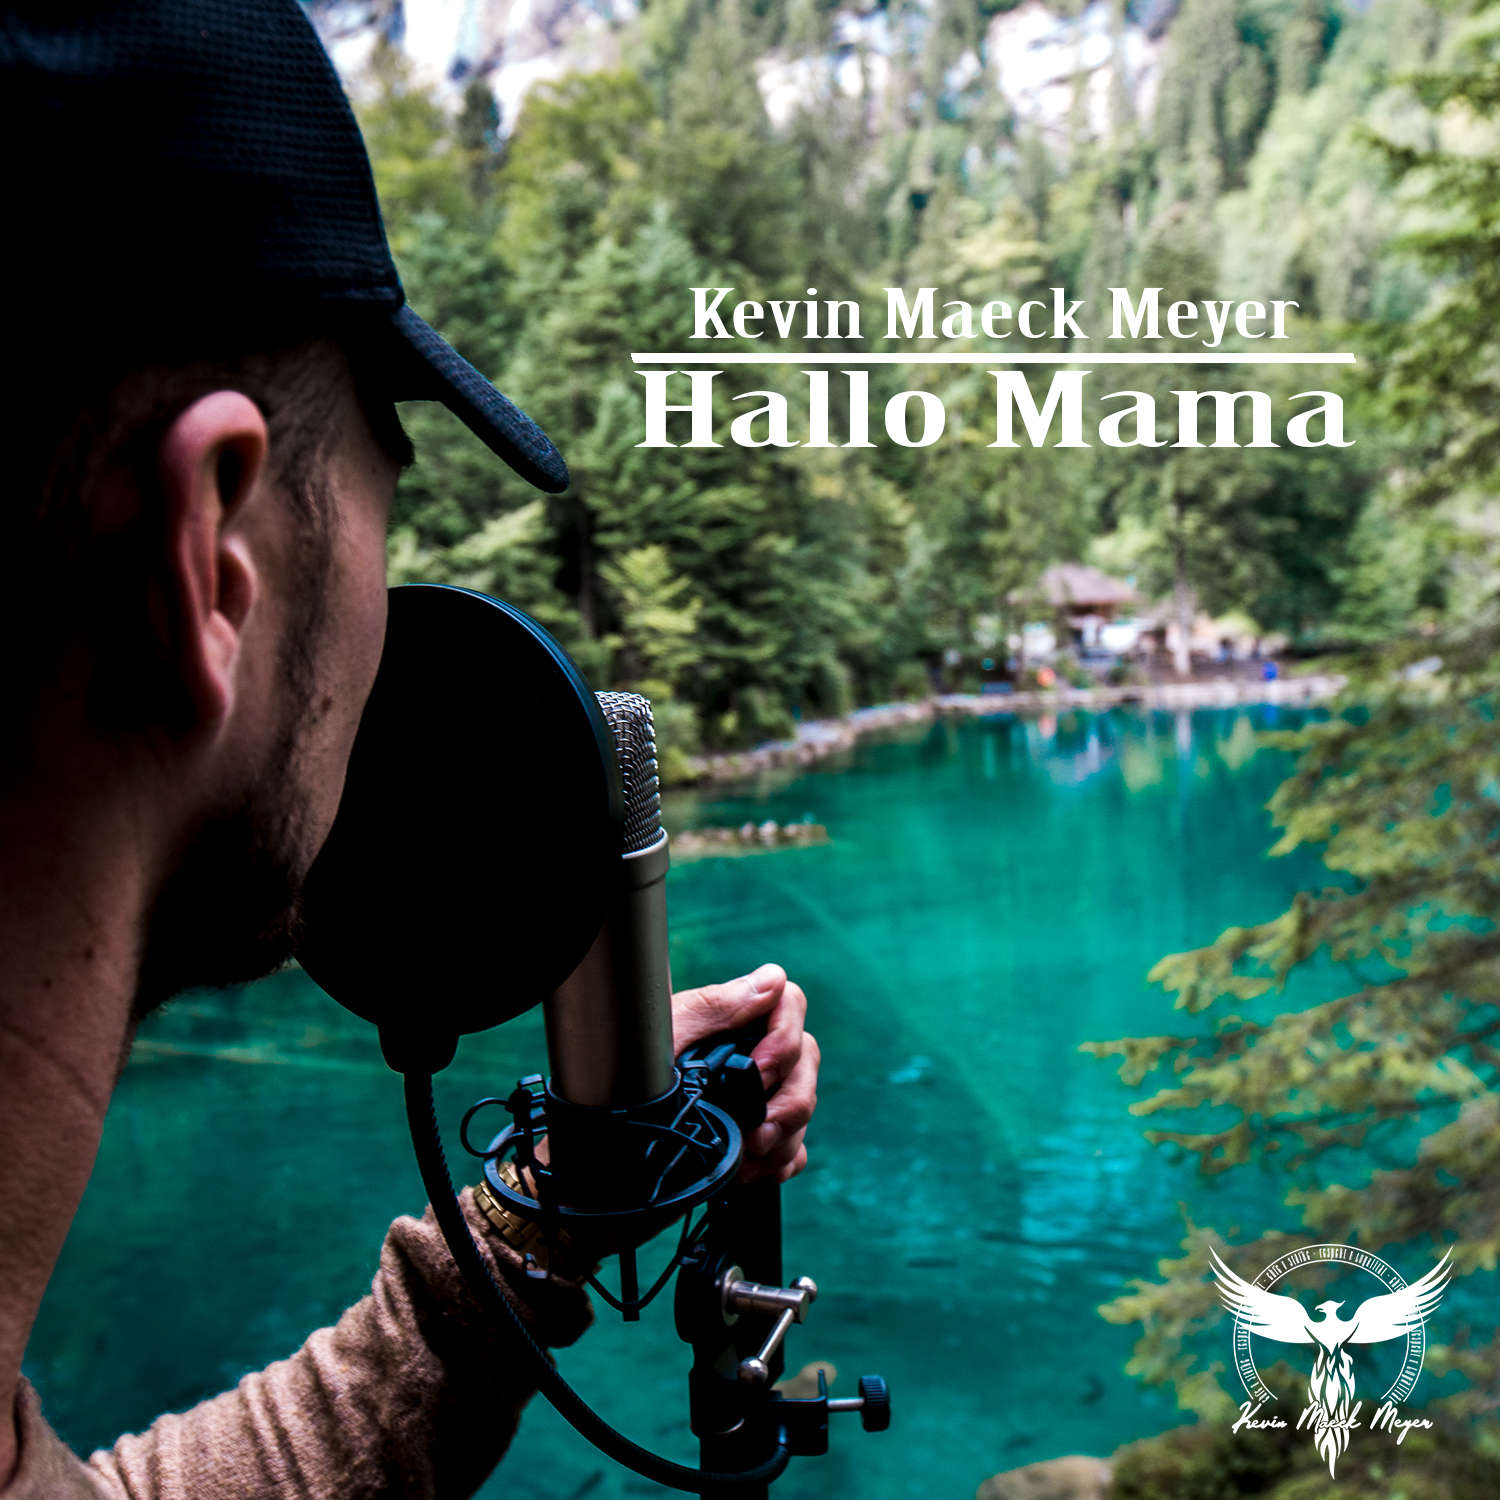 Upcoming: Kevin Maeck Meyer - Hallo Mama